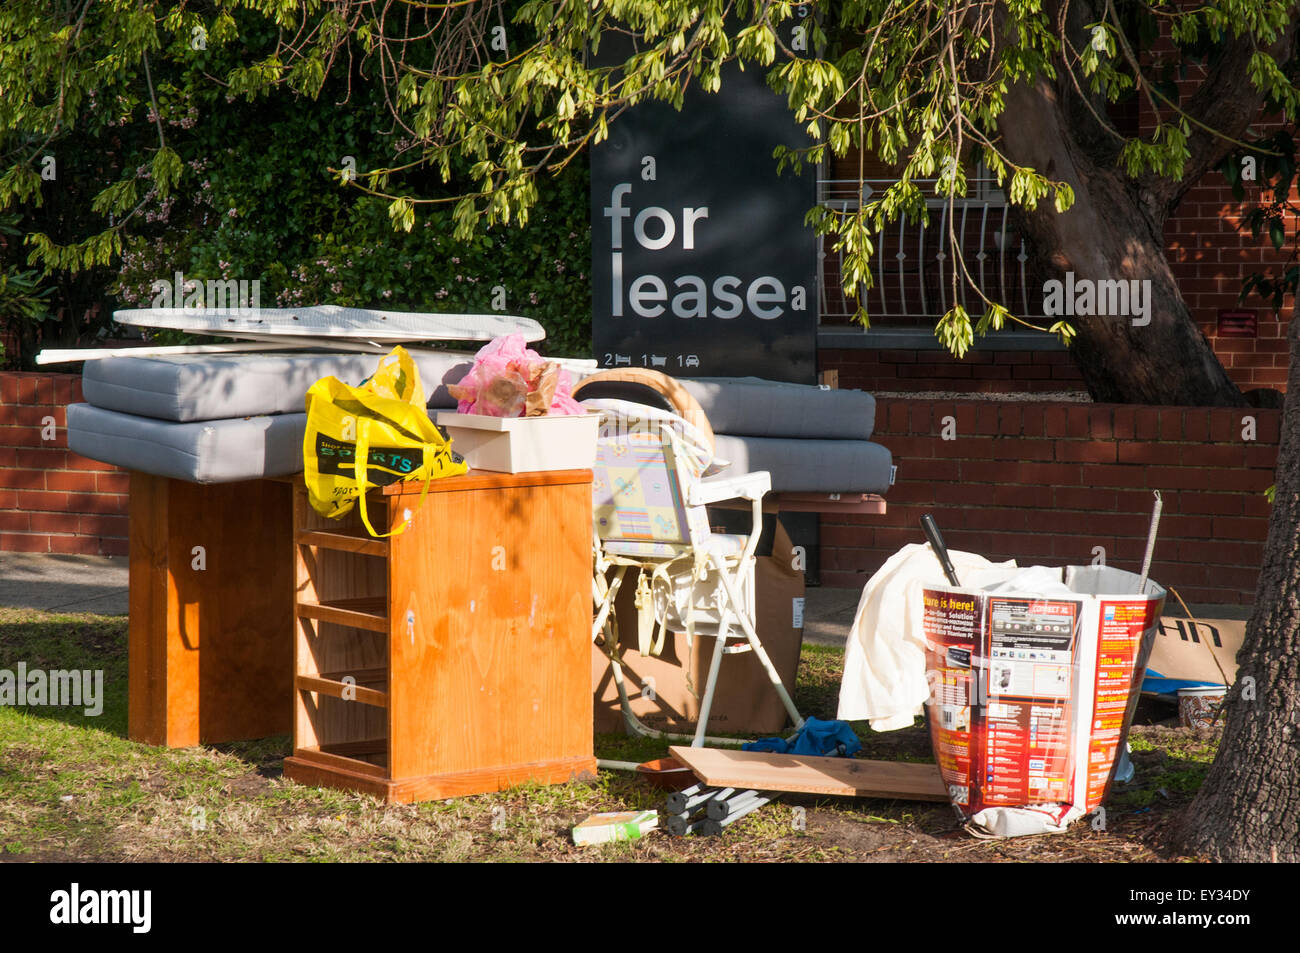 Waste dumped outside a Melbourne apartment block, probably by vacating tenants - Stock Image